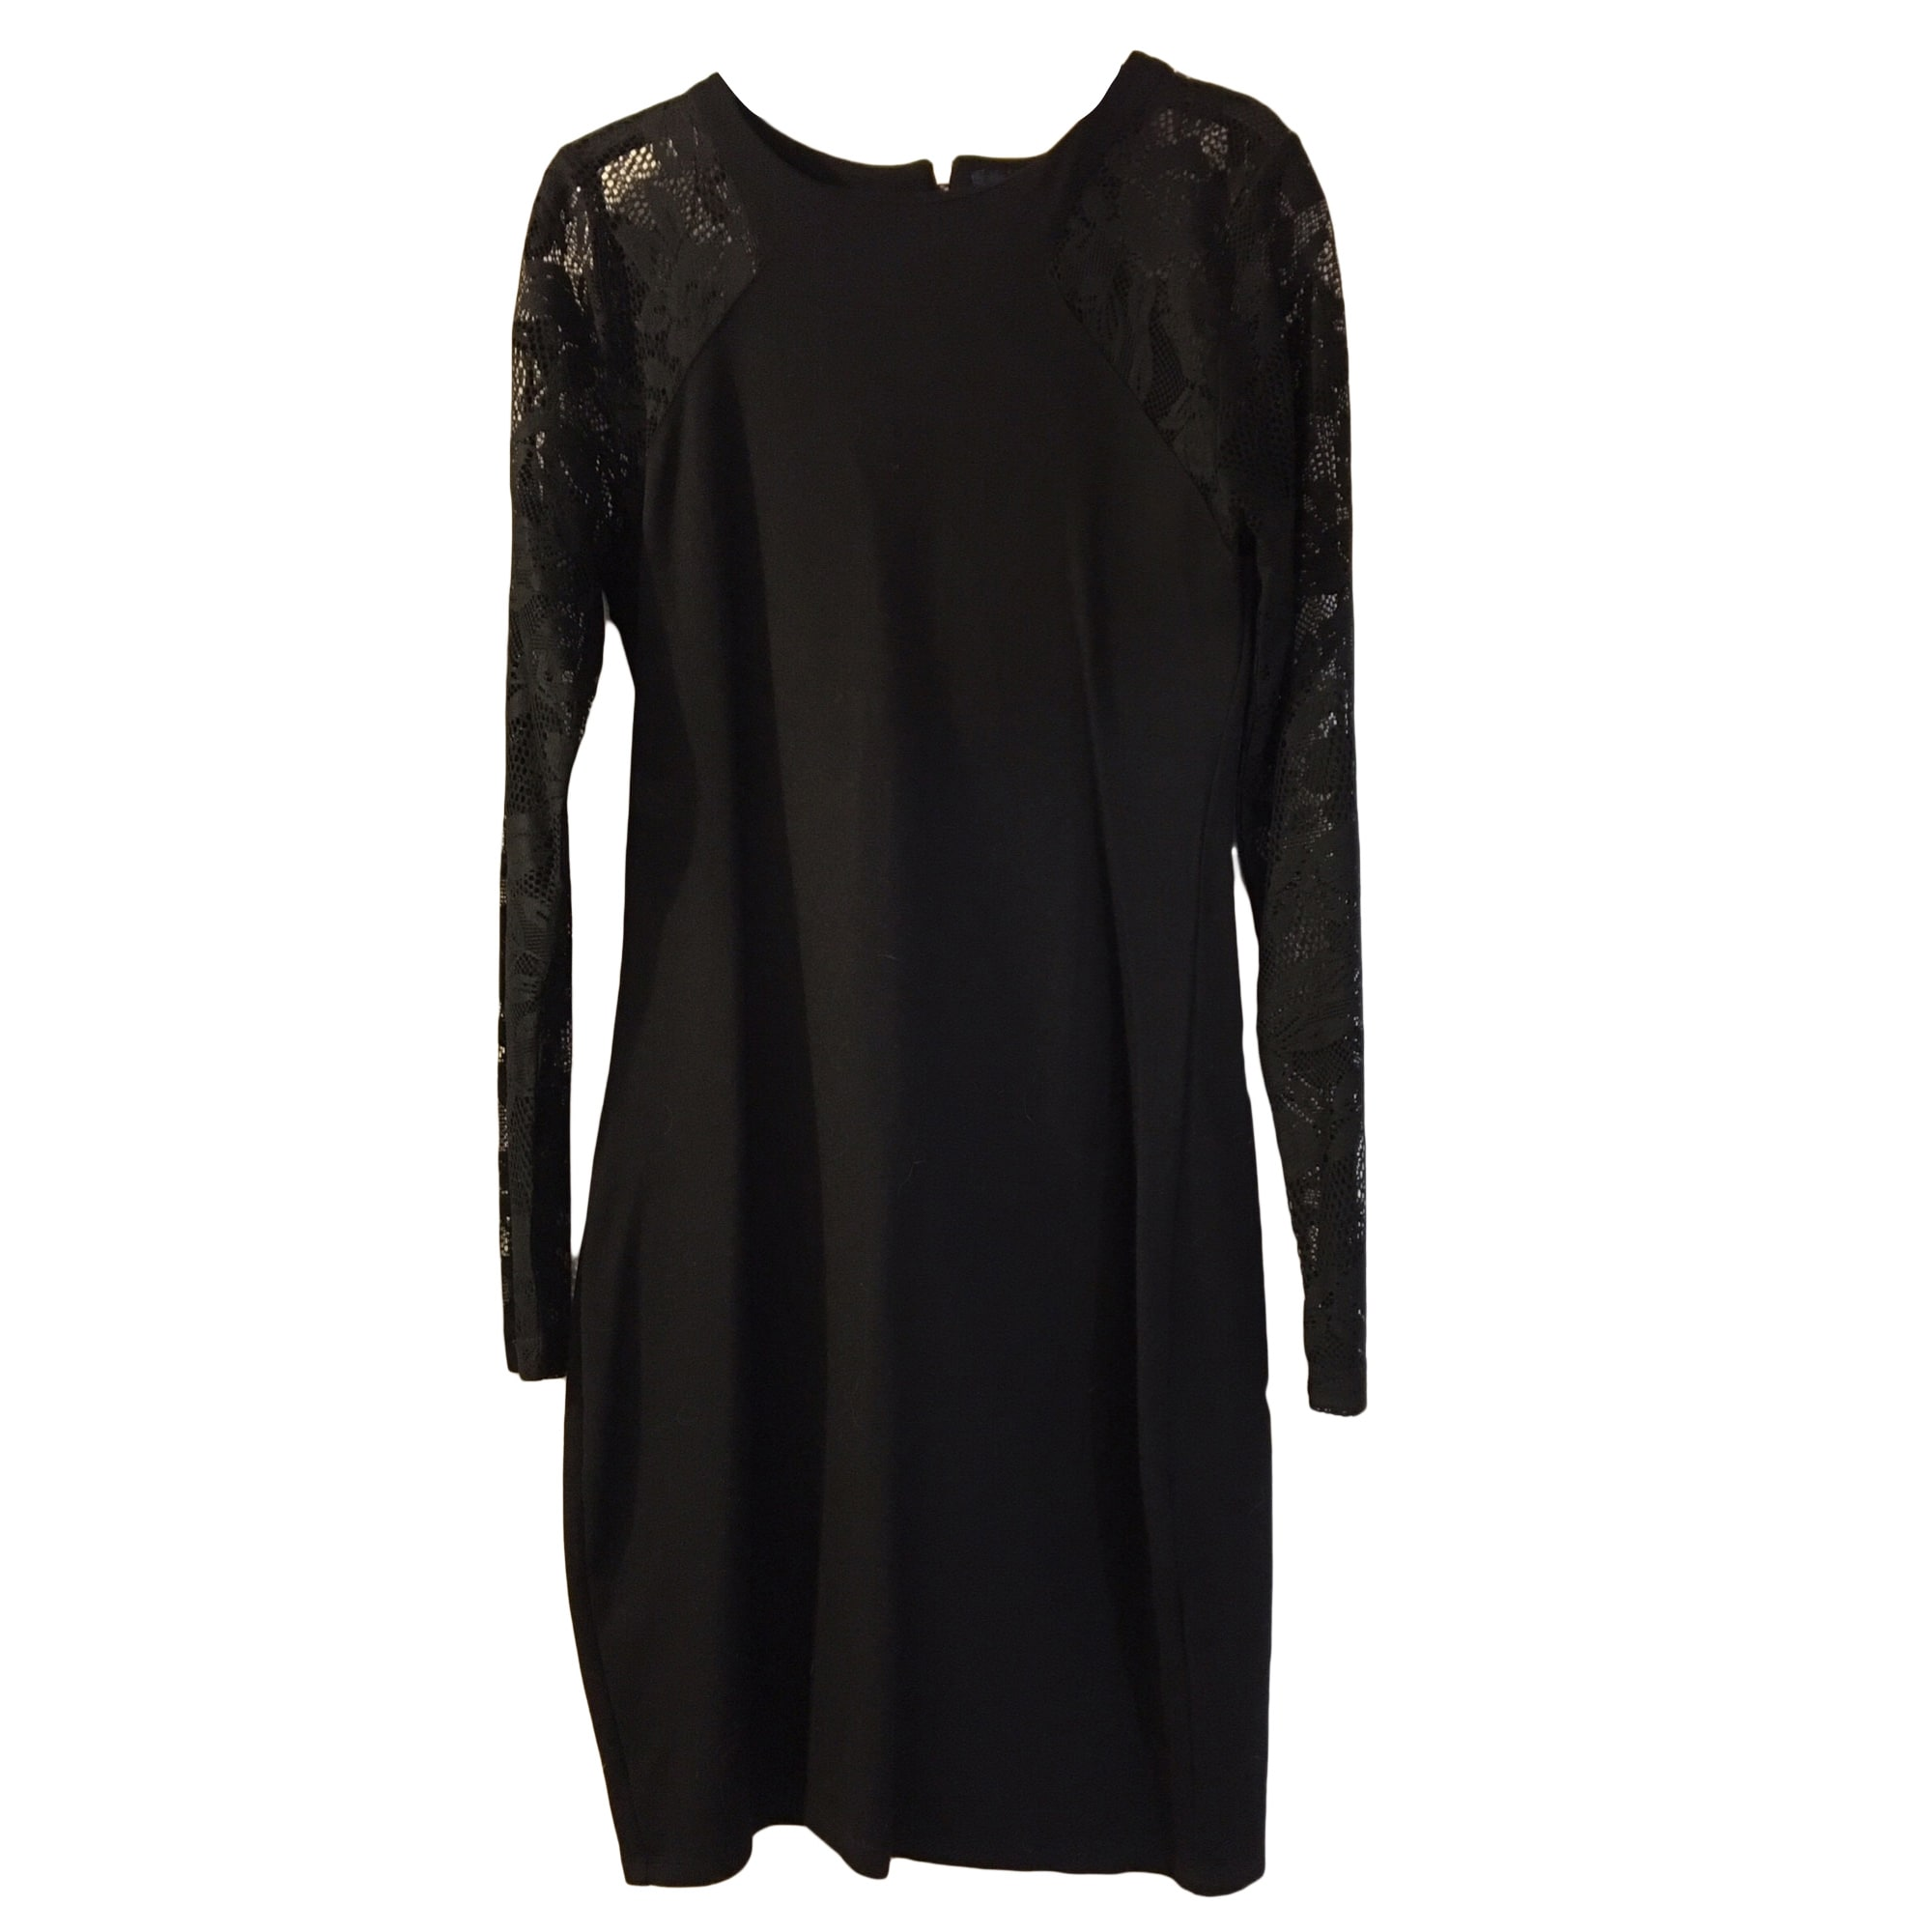 French Connection Robe Robe Connection Courte Noir French Courte Y76fgbyv